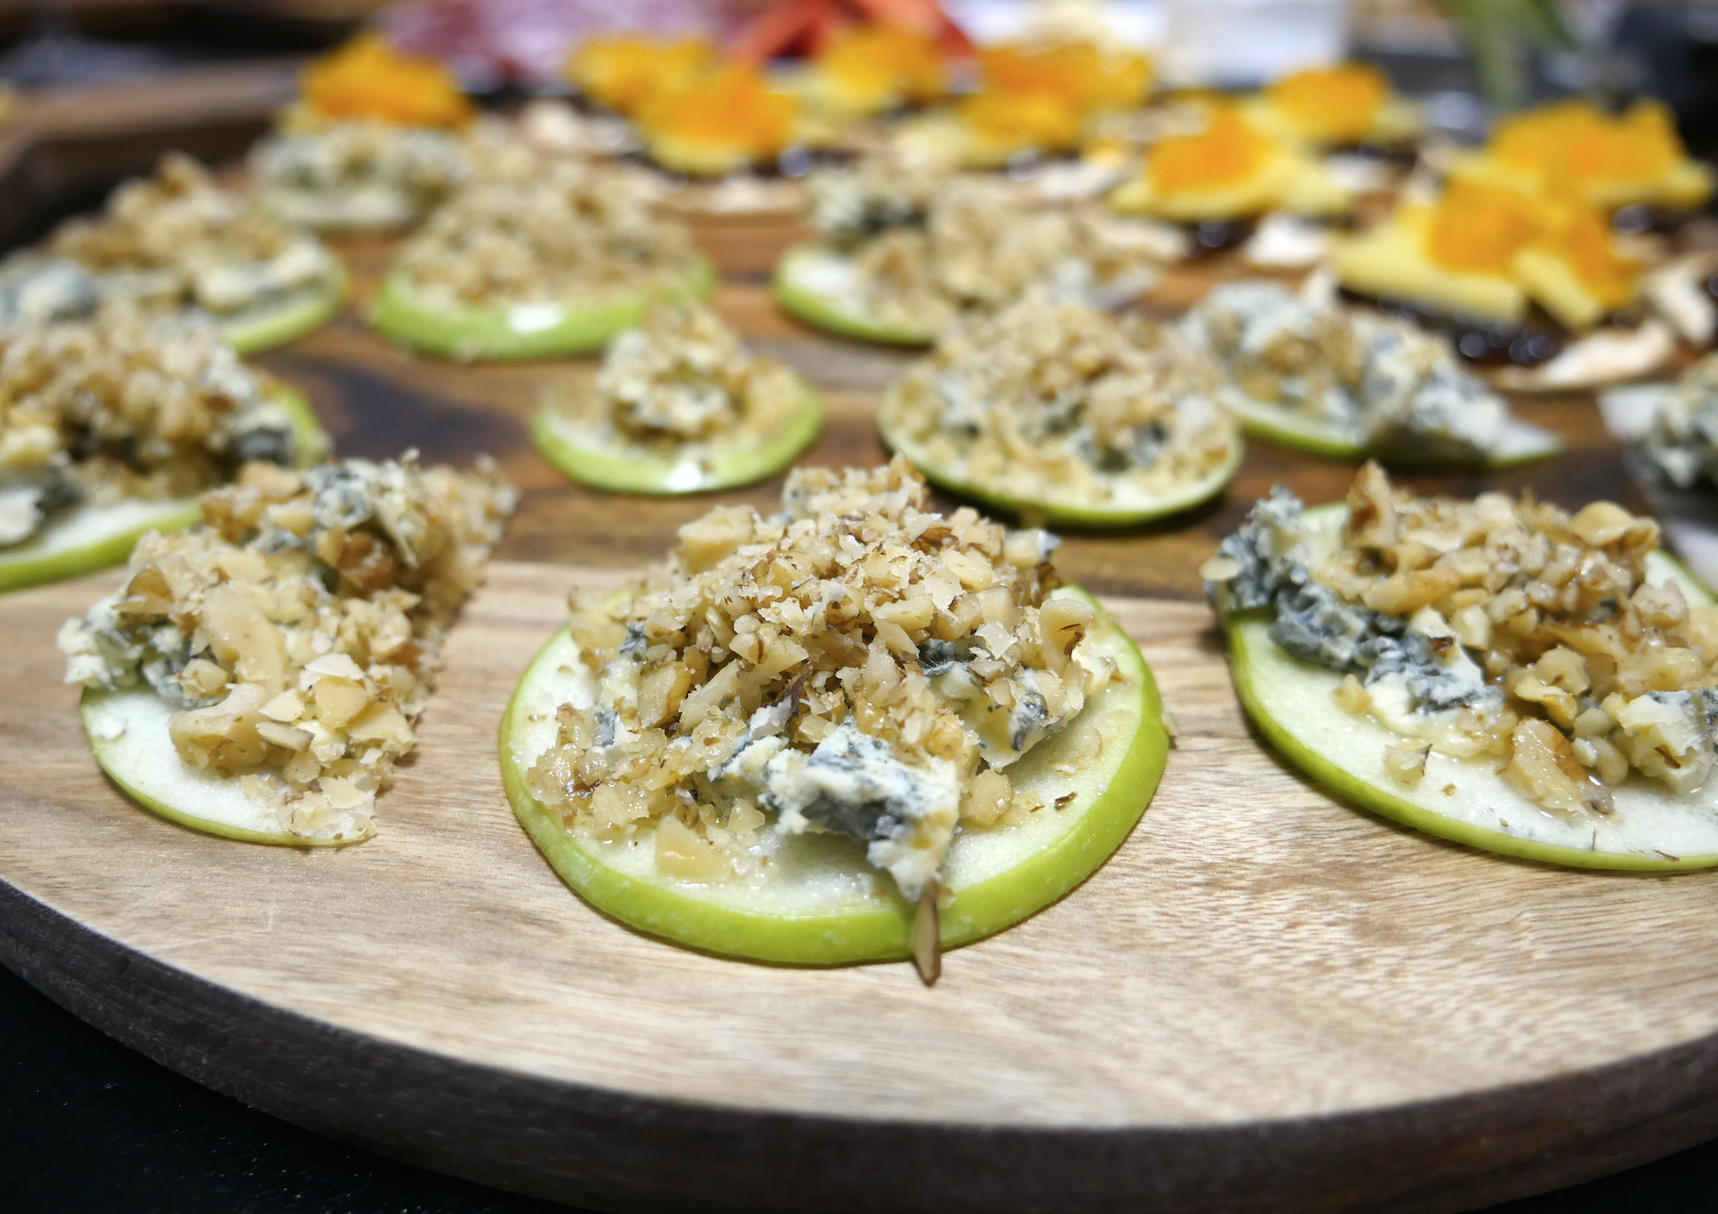 Combo #5 Blue Cheese and a walnut crumb on a thinly sliced apple all drizzled with honey